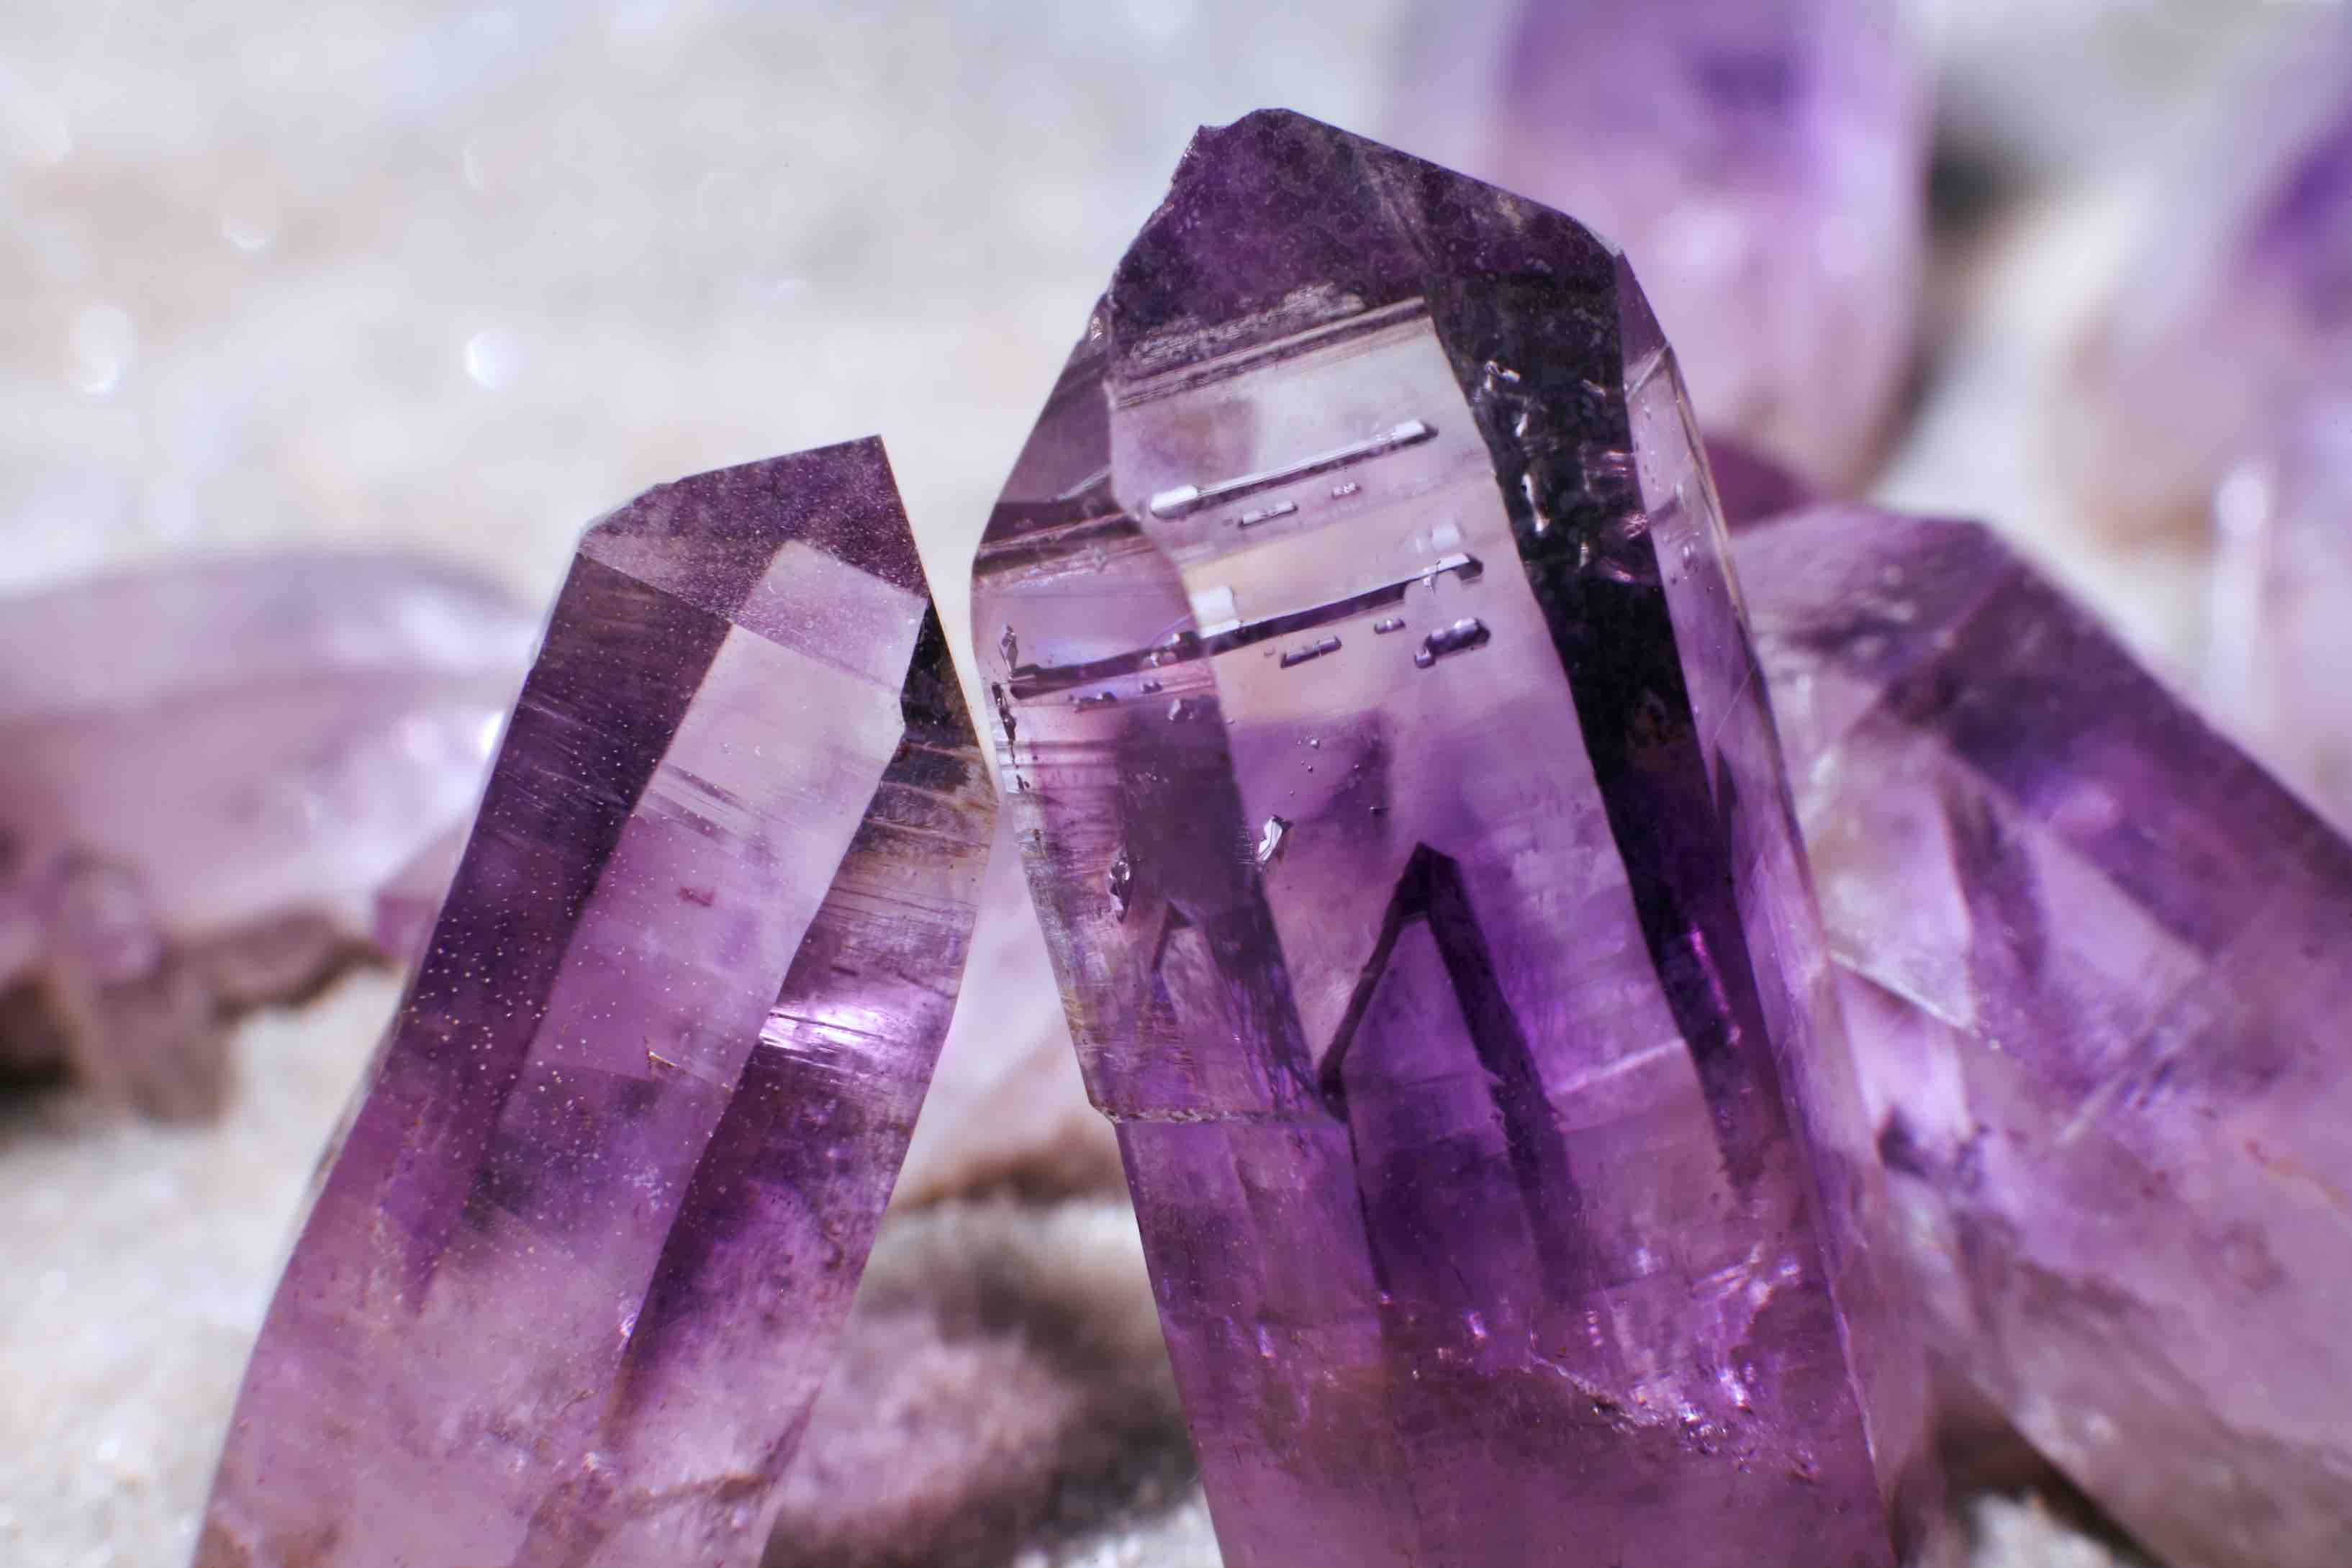 The Hoodwitch & Smashbox Have Created a Crystal-Inspired Beauty Line